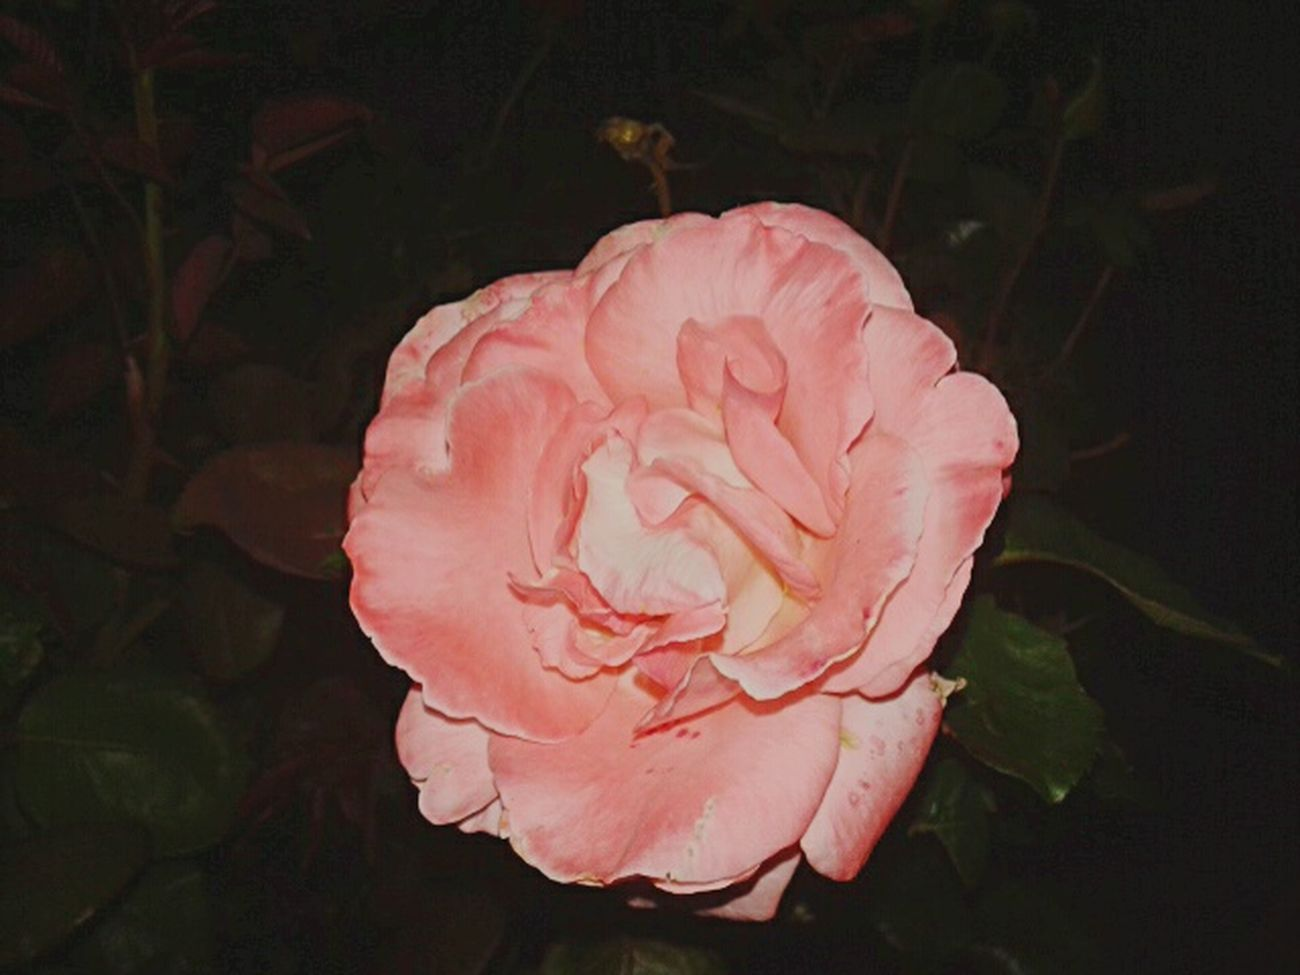 Rosas🌹🌹 Petal Flower Pink Color Rose - Flower Close-up Freshness Fragility No People Nature Rose Petals Black Background Beauty In Nature Flower Head Outdoors Day